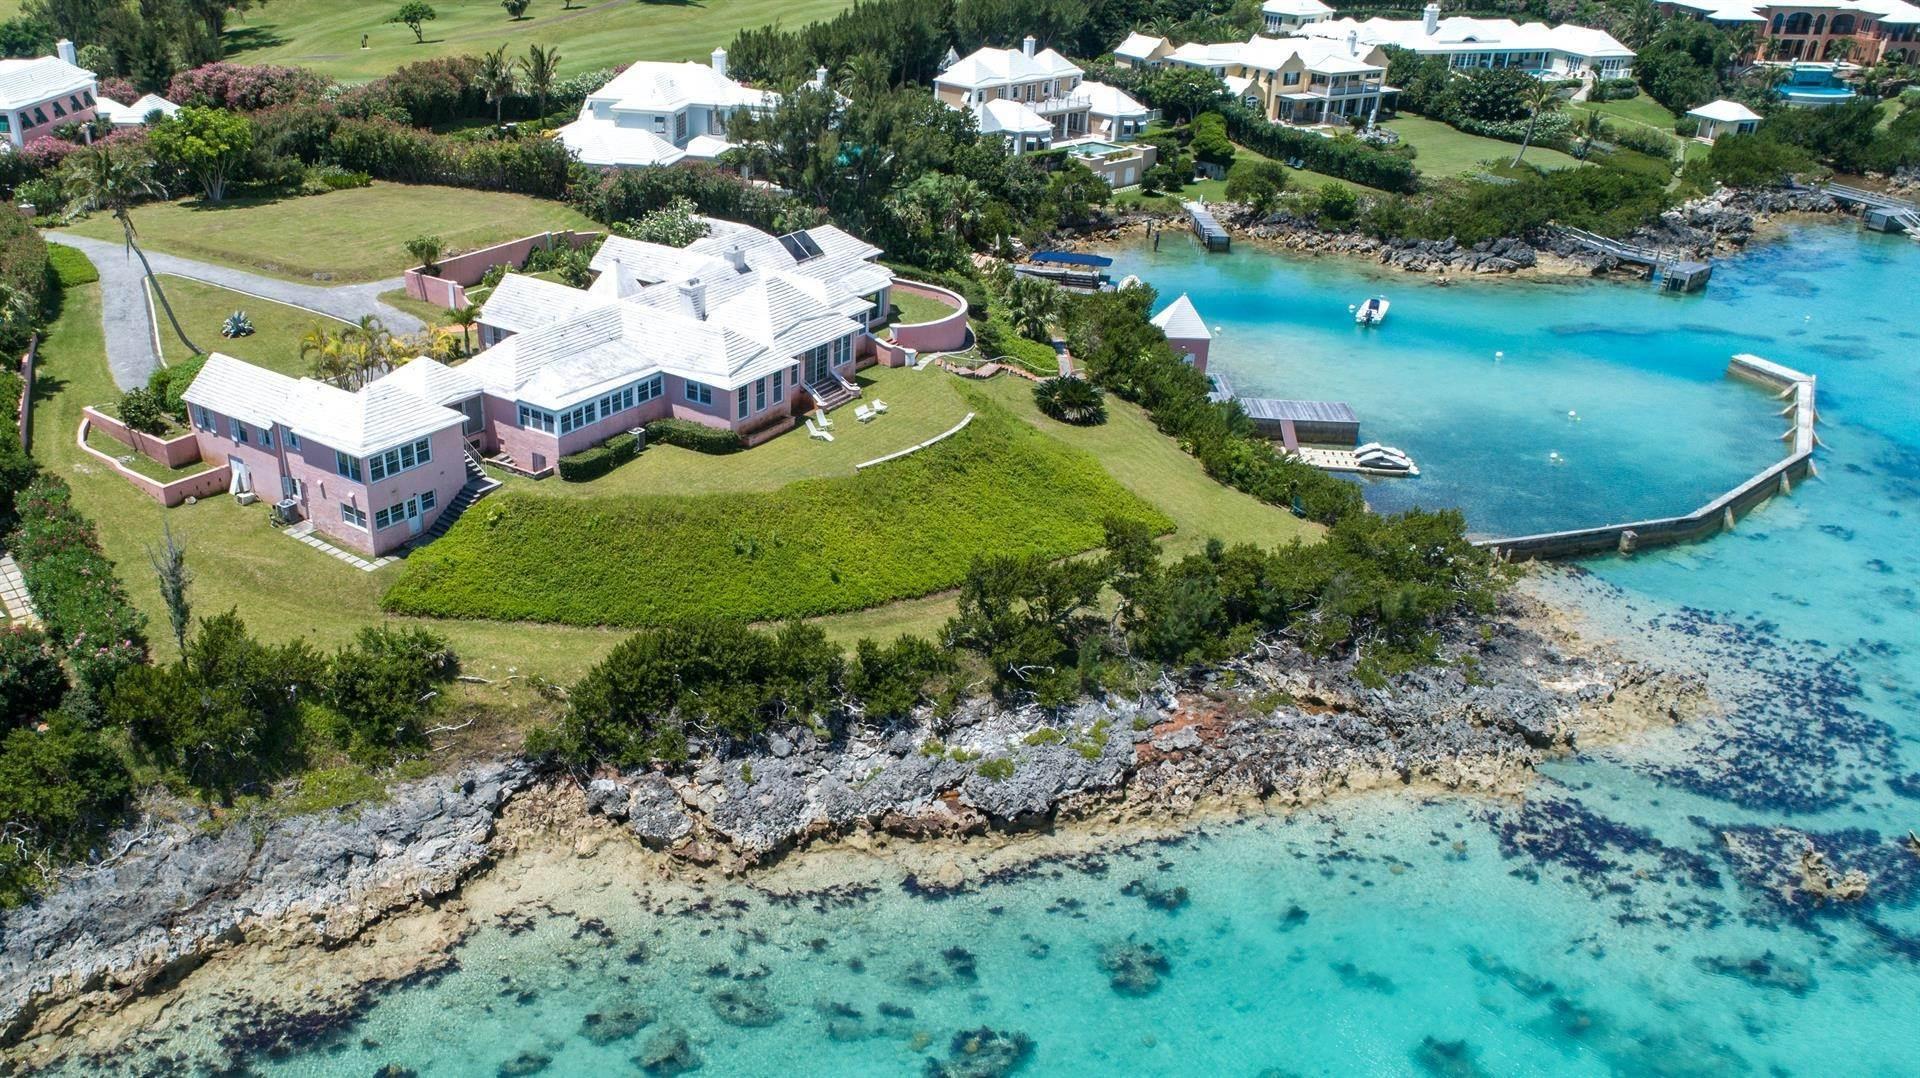 4. Propiedad con frente por un Venta en At Last in Tucker's Town At Last in Tucker's Town, ,Bermuda – Sinclair Realty